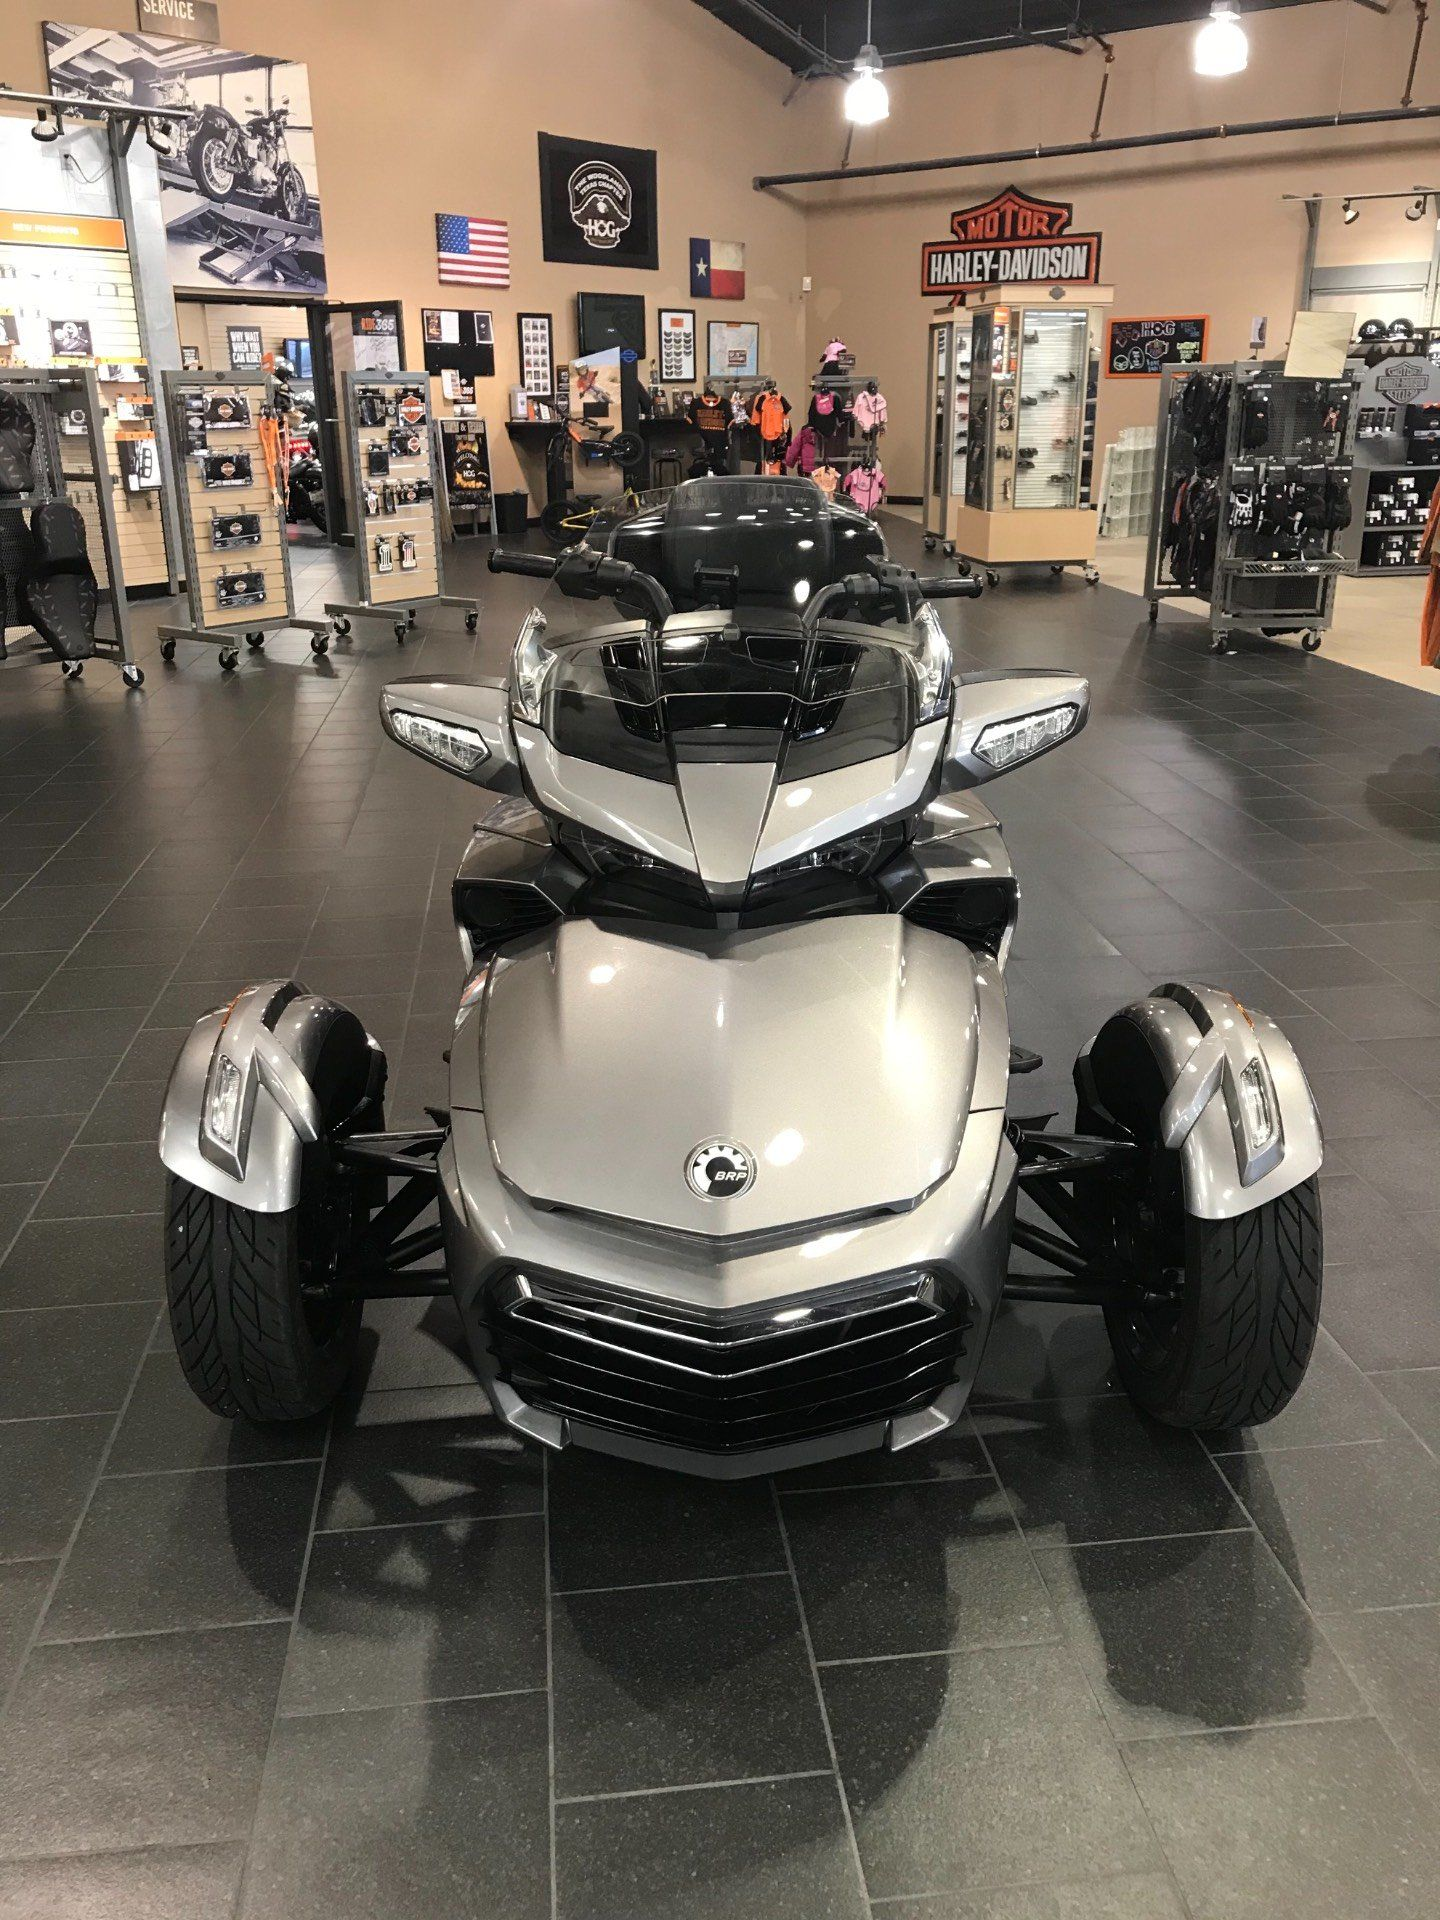 2017 Can-Am Spyder F3 Limited in The Woodlands, Texas - Photo 3